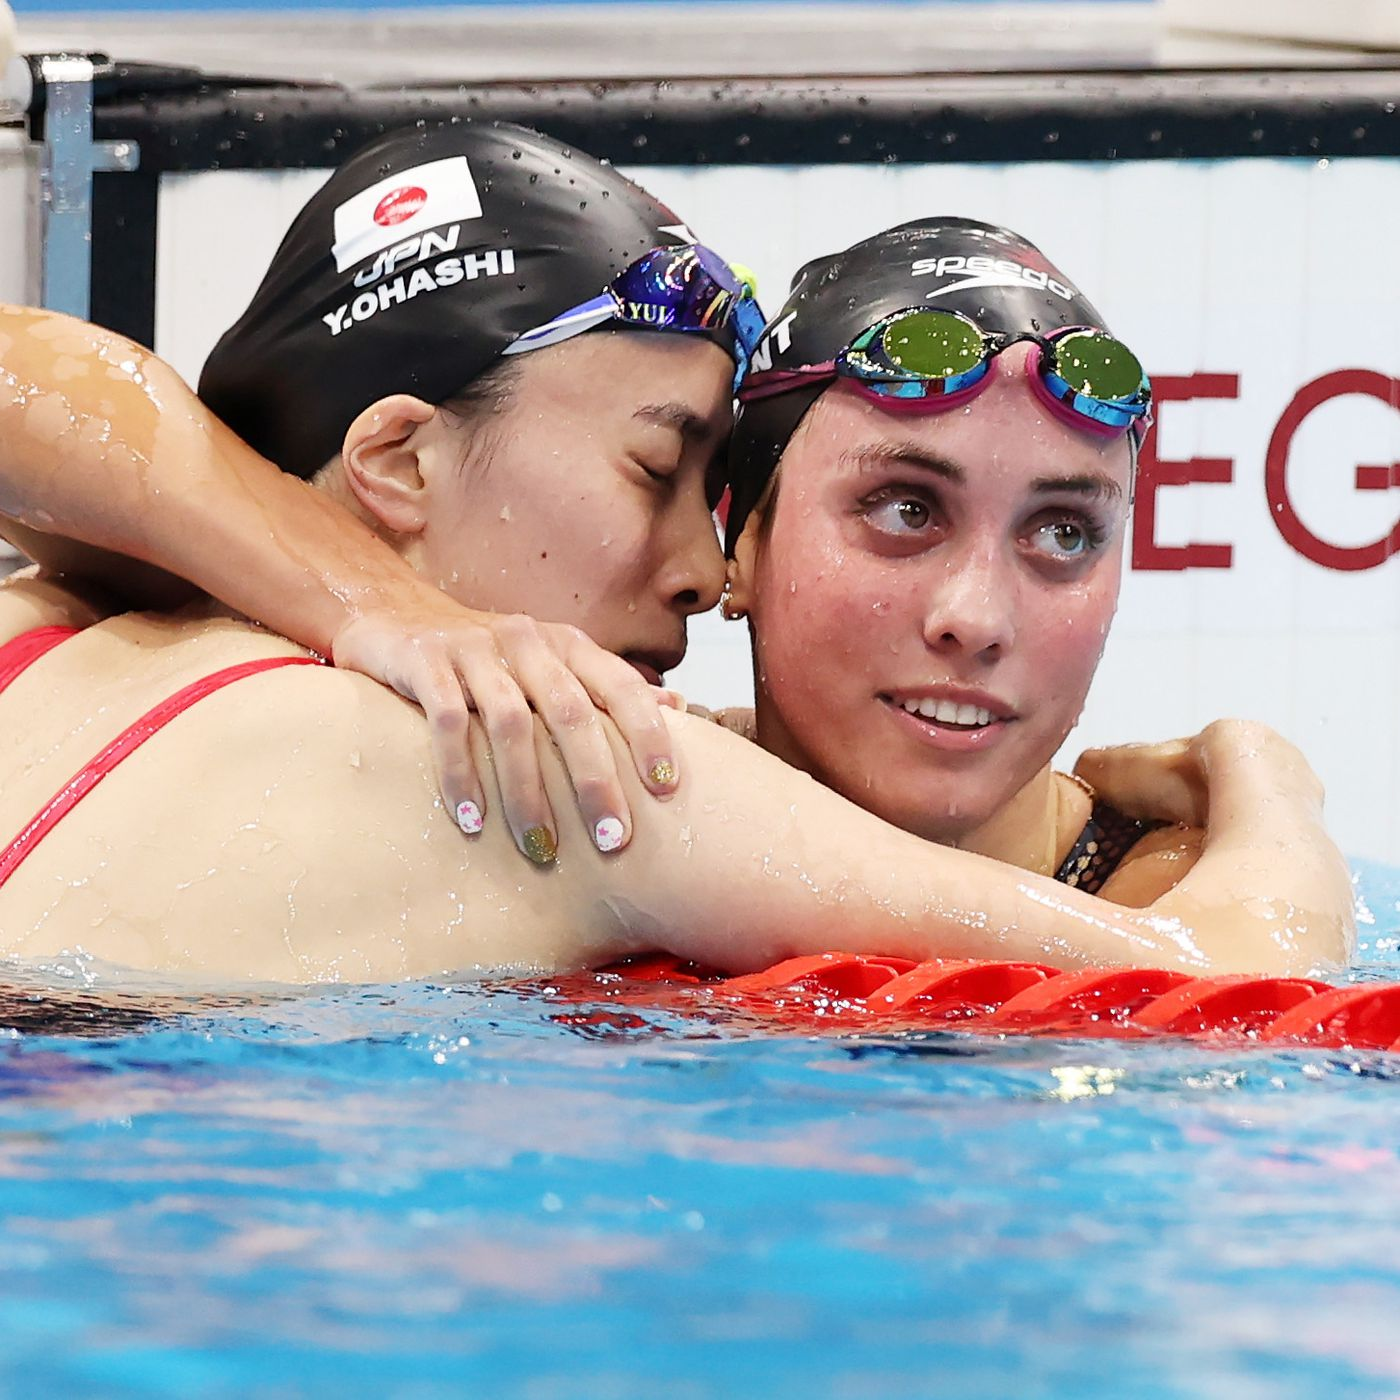 2020 Tokyo Olympics Emma Weyant Captures 400im Silver In Olympic Debut Streaking The Lawn